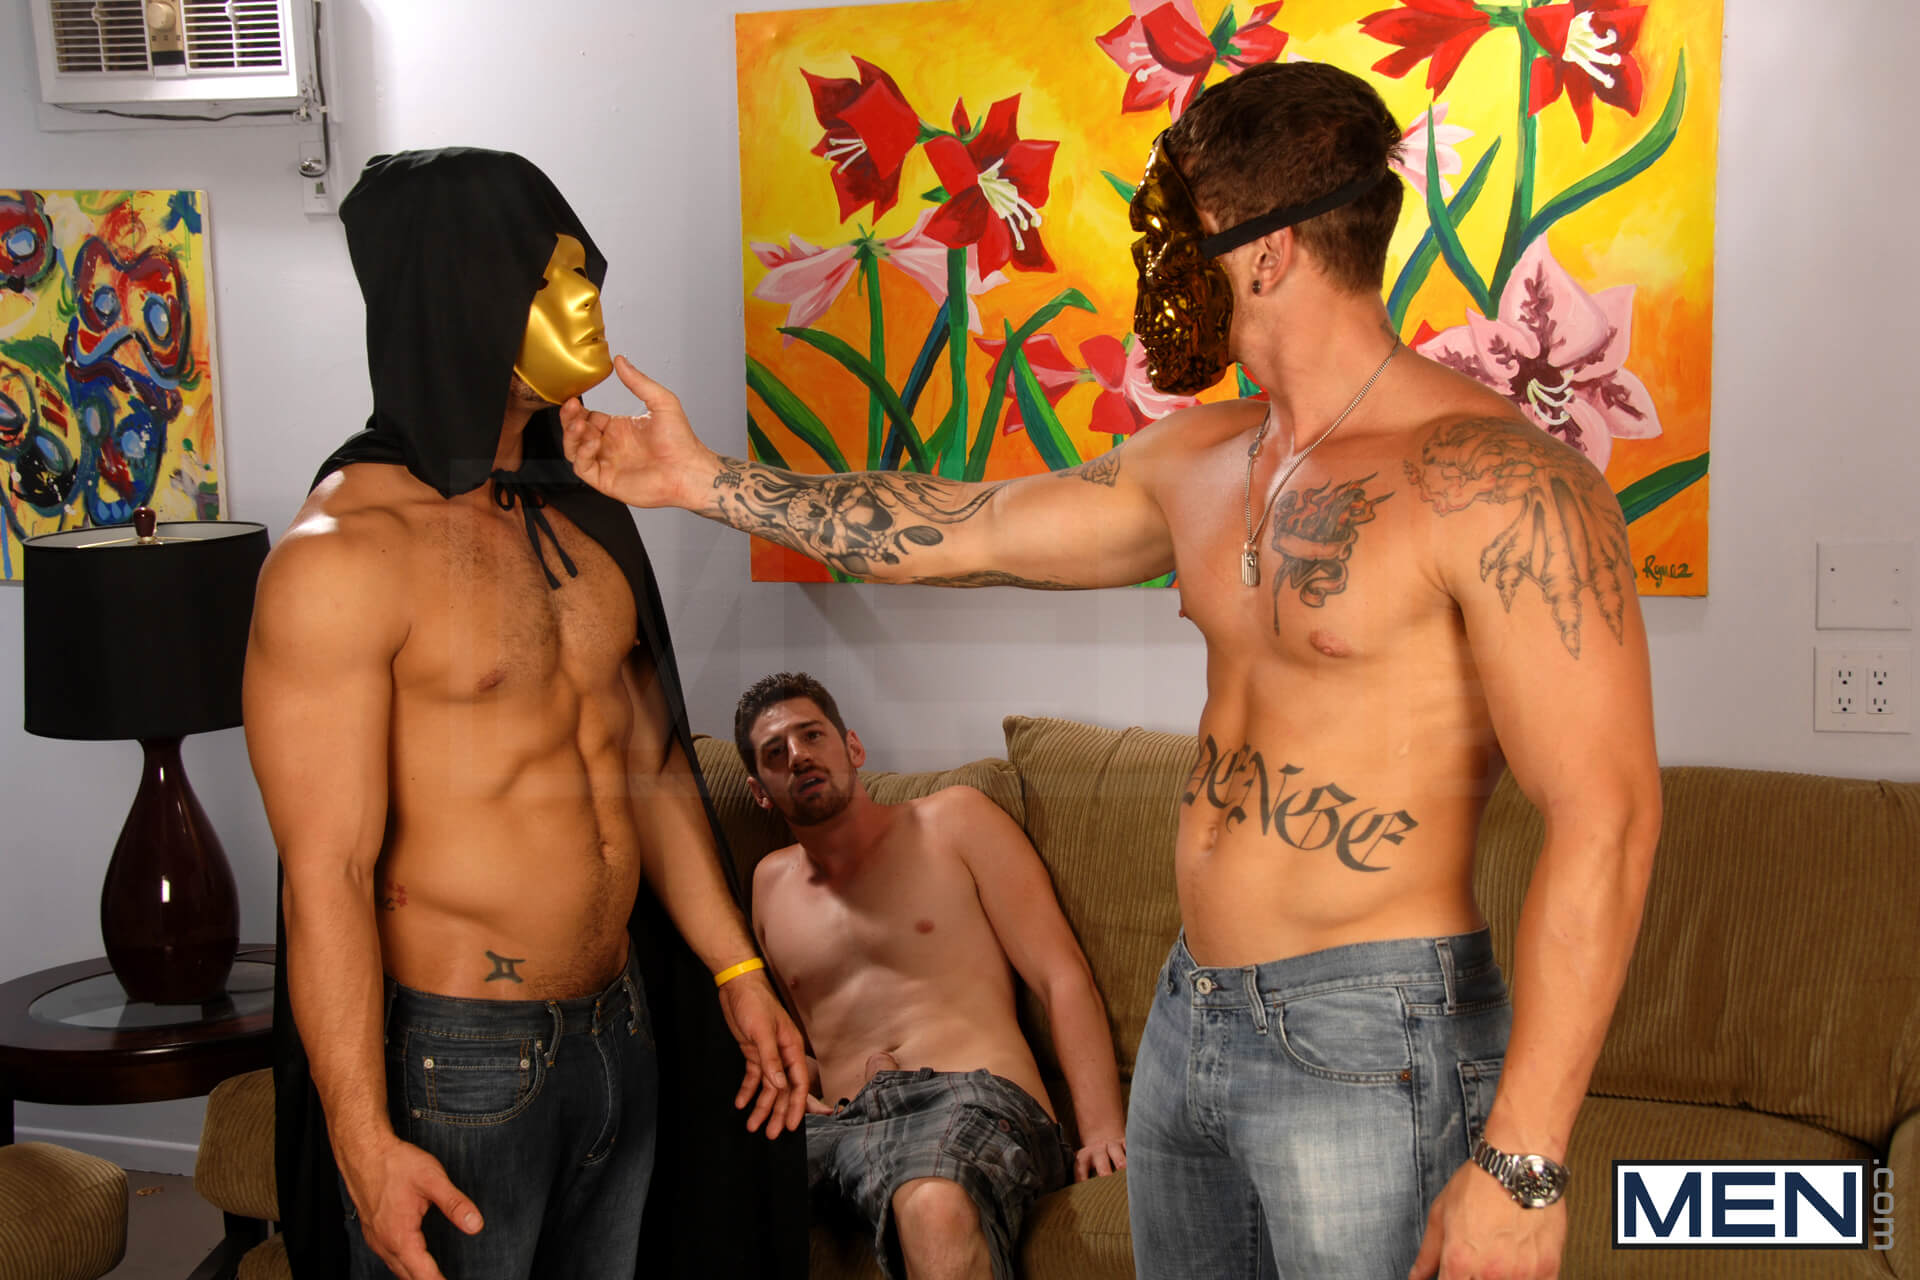 men drill my hole after the masquerade andrew stark sebastian young trey turner gay porn blog image 6